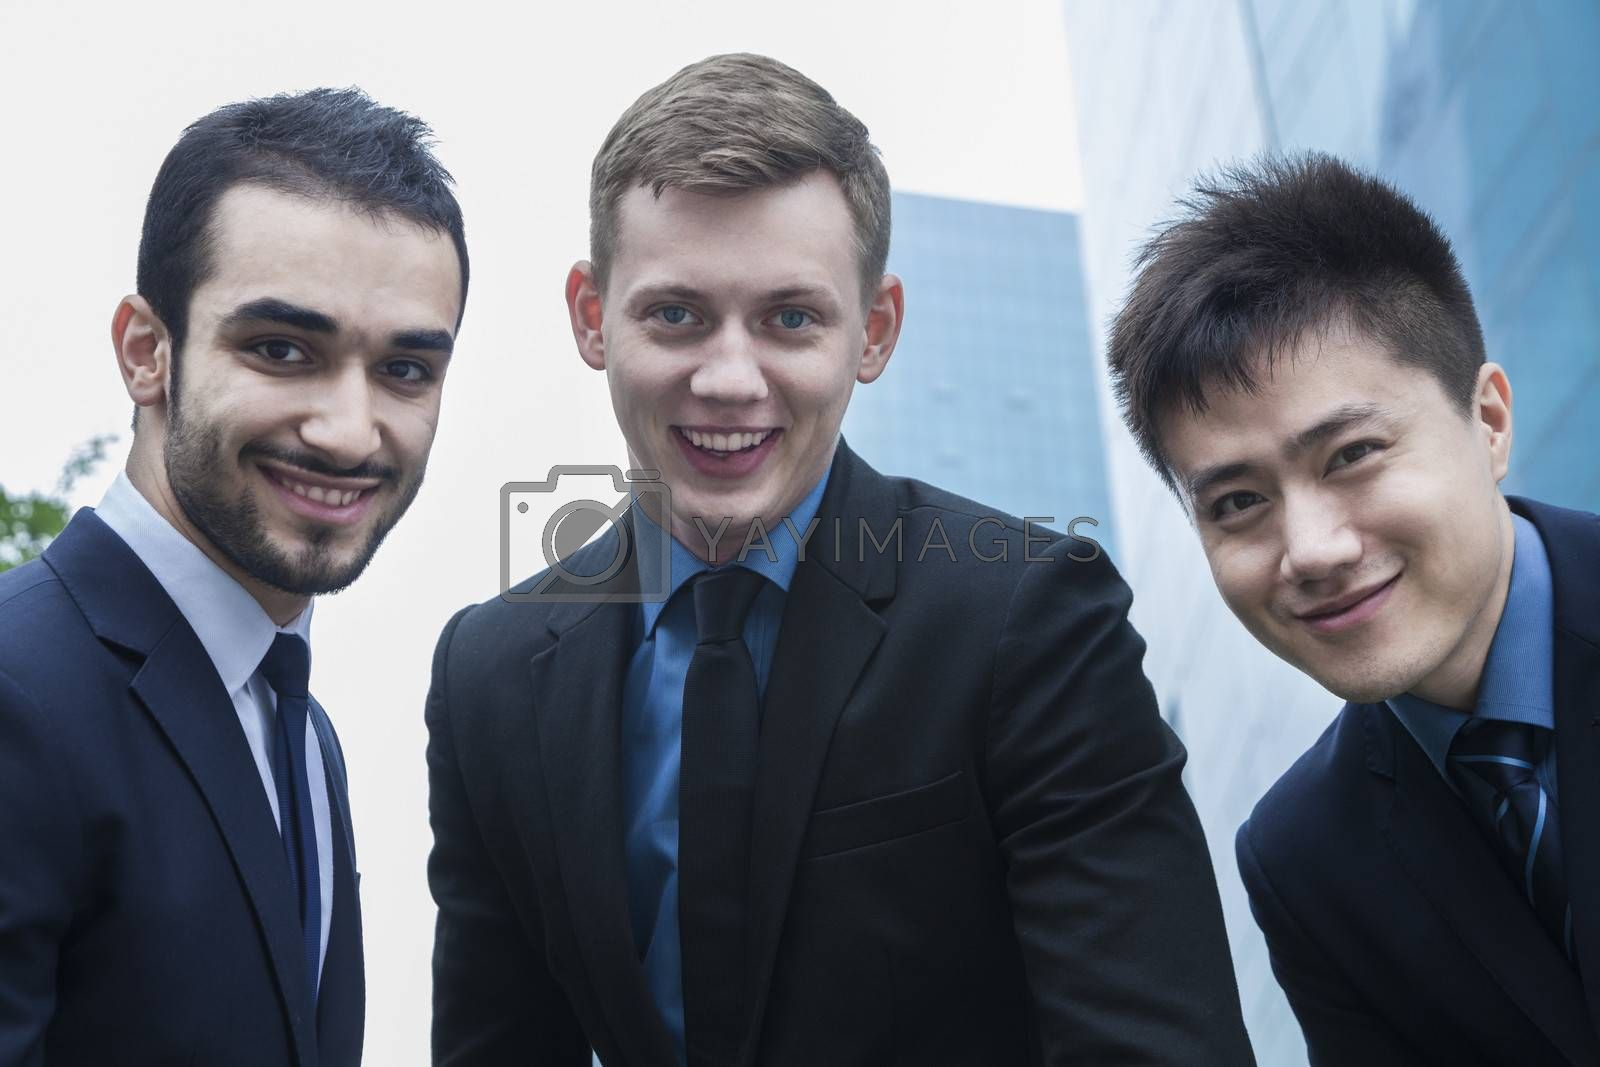 Portrait of three smiling businessmen, outdoors, business district  by XiXinXing